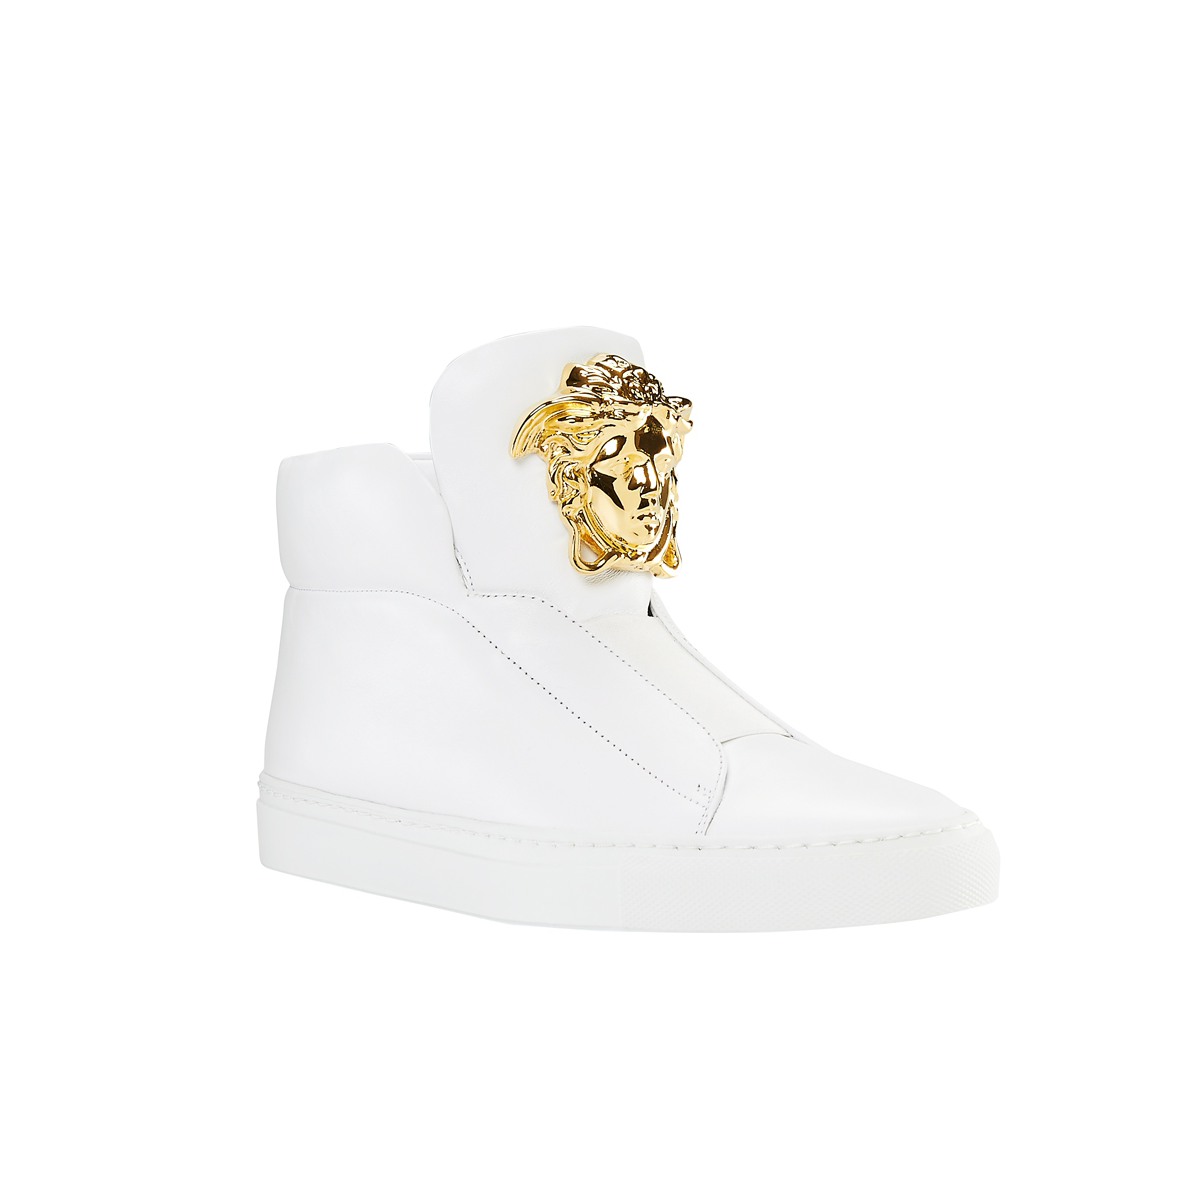 59a95db7f6f White #Versace Palazzo high-top trainers with a gold Medusa on the  tongue.#VersaceSneakers